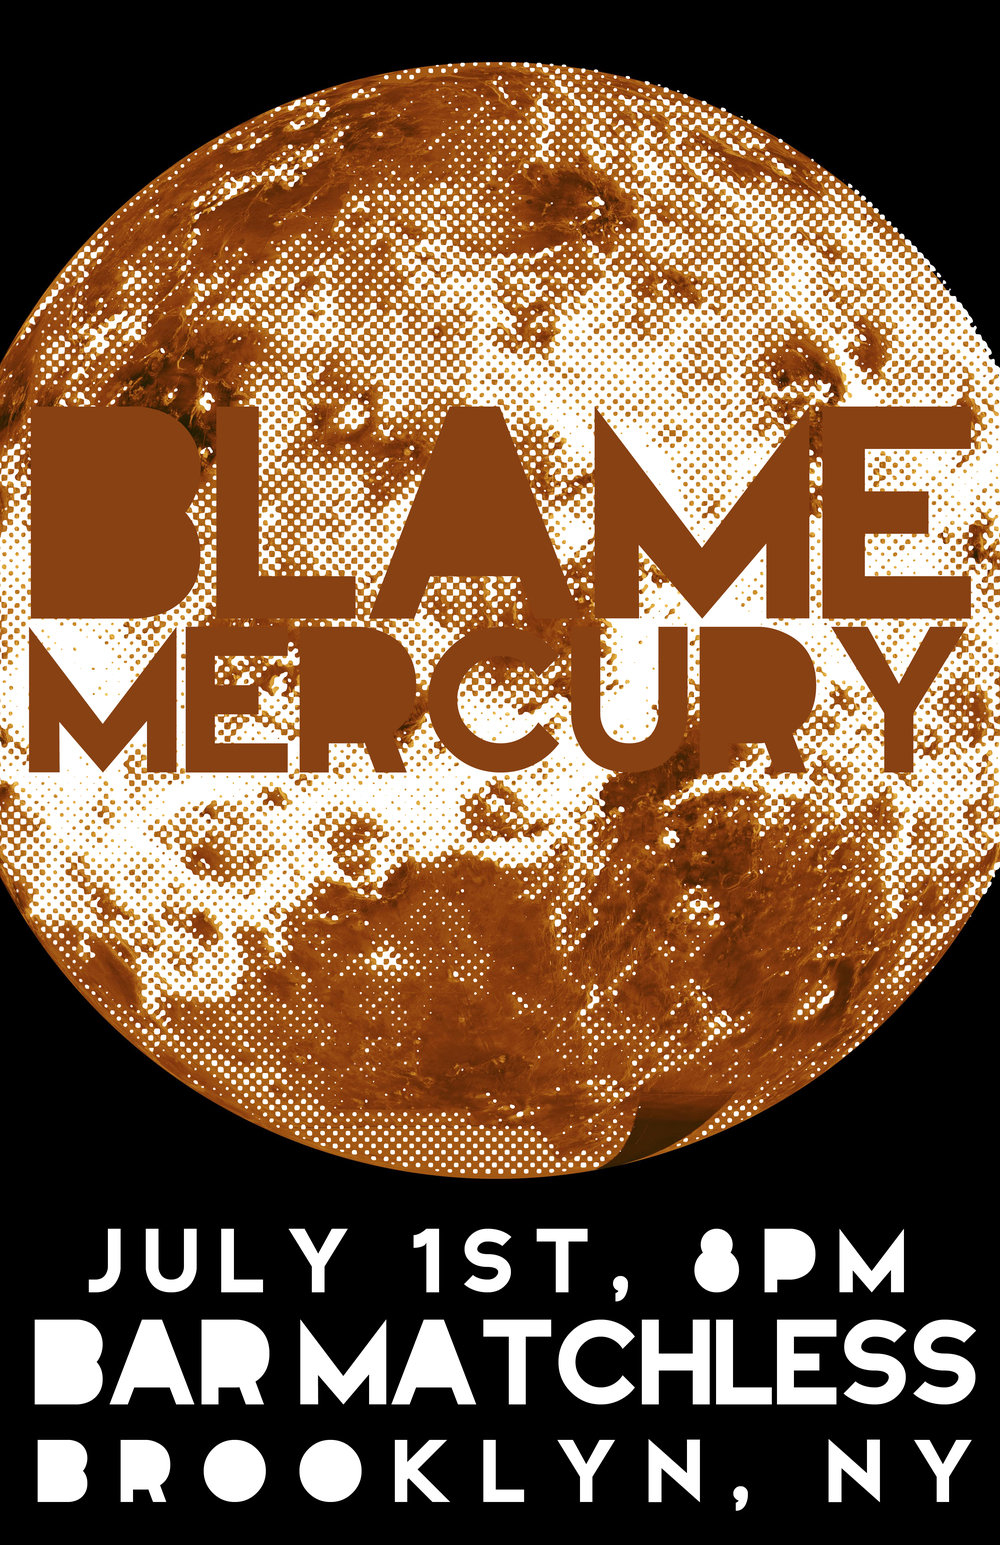 16-0701 Blame Mercury at Matchless.jpg